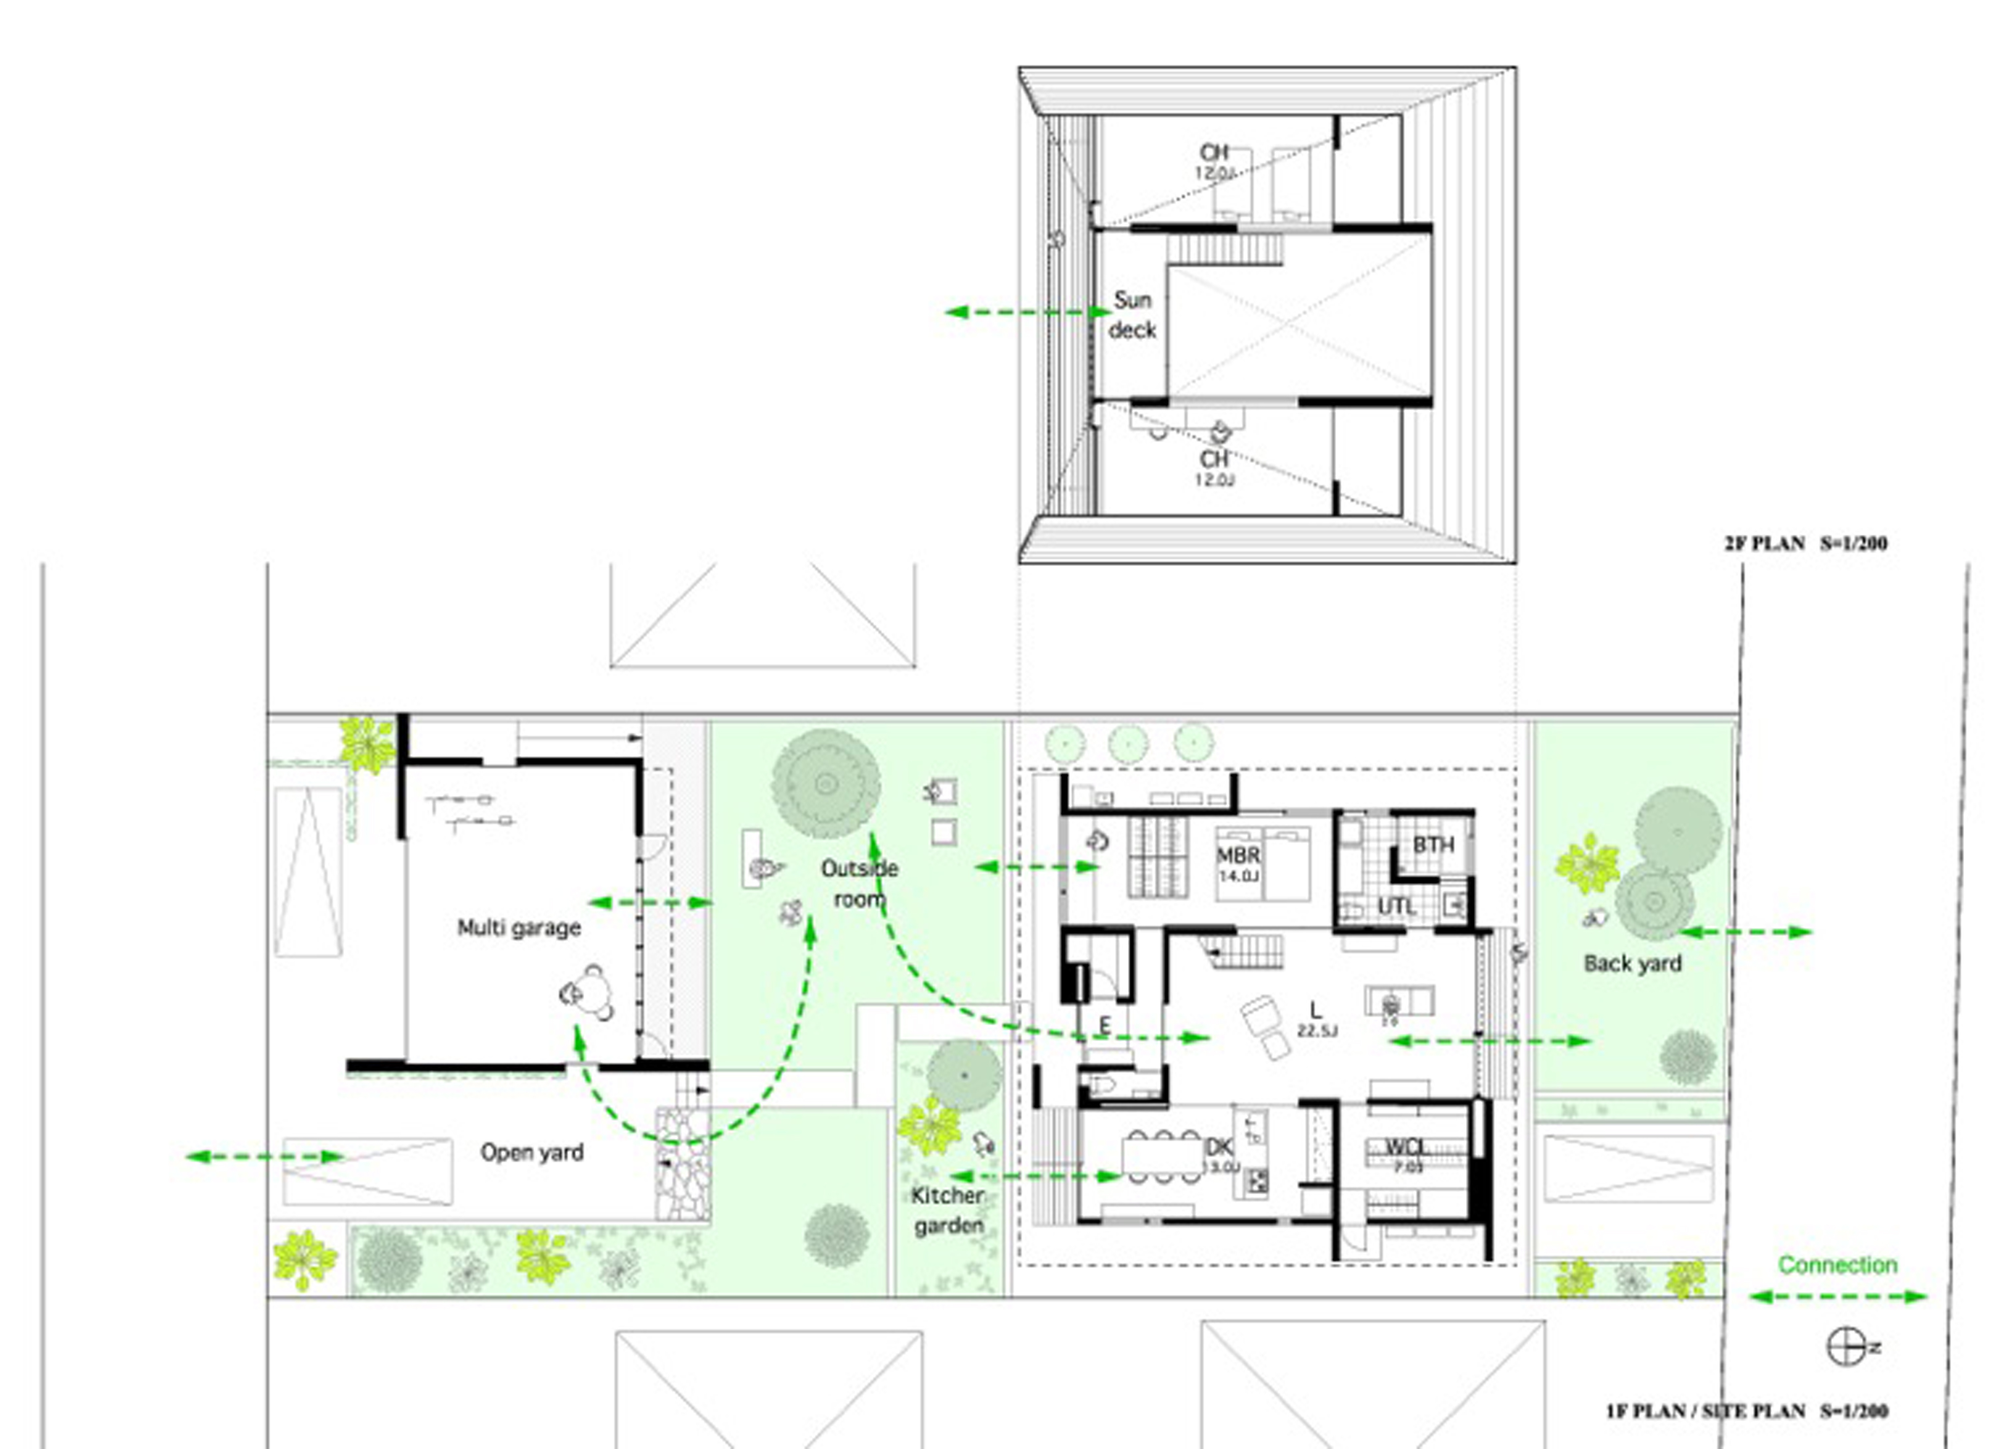 52eb20e6e8e44e981a0000a8_house-with-a-large-hipped-roof-naoi-architecture-design-office_floor_plan